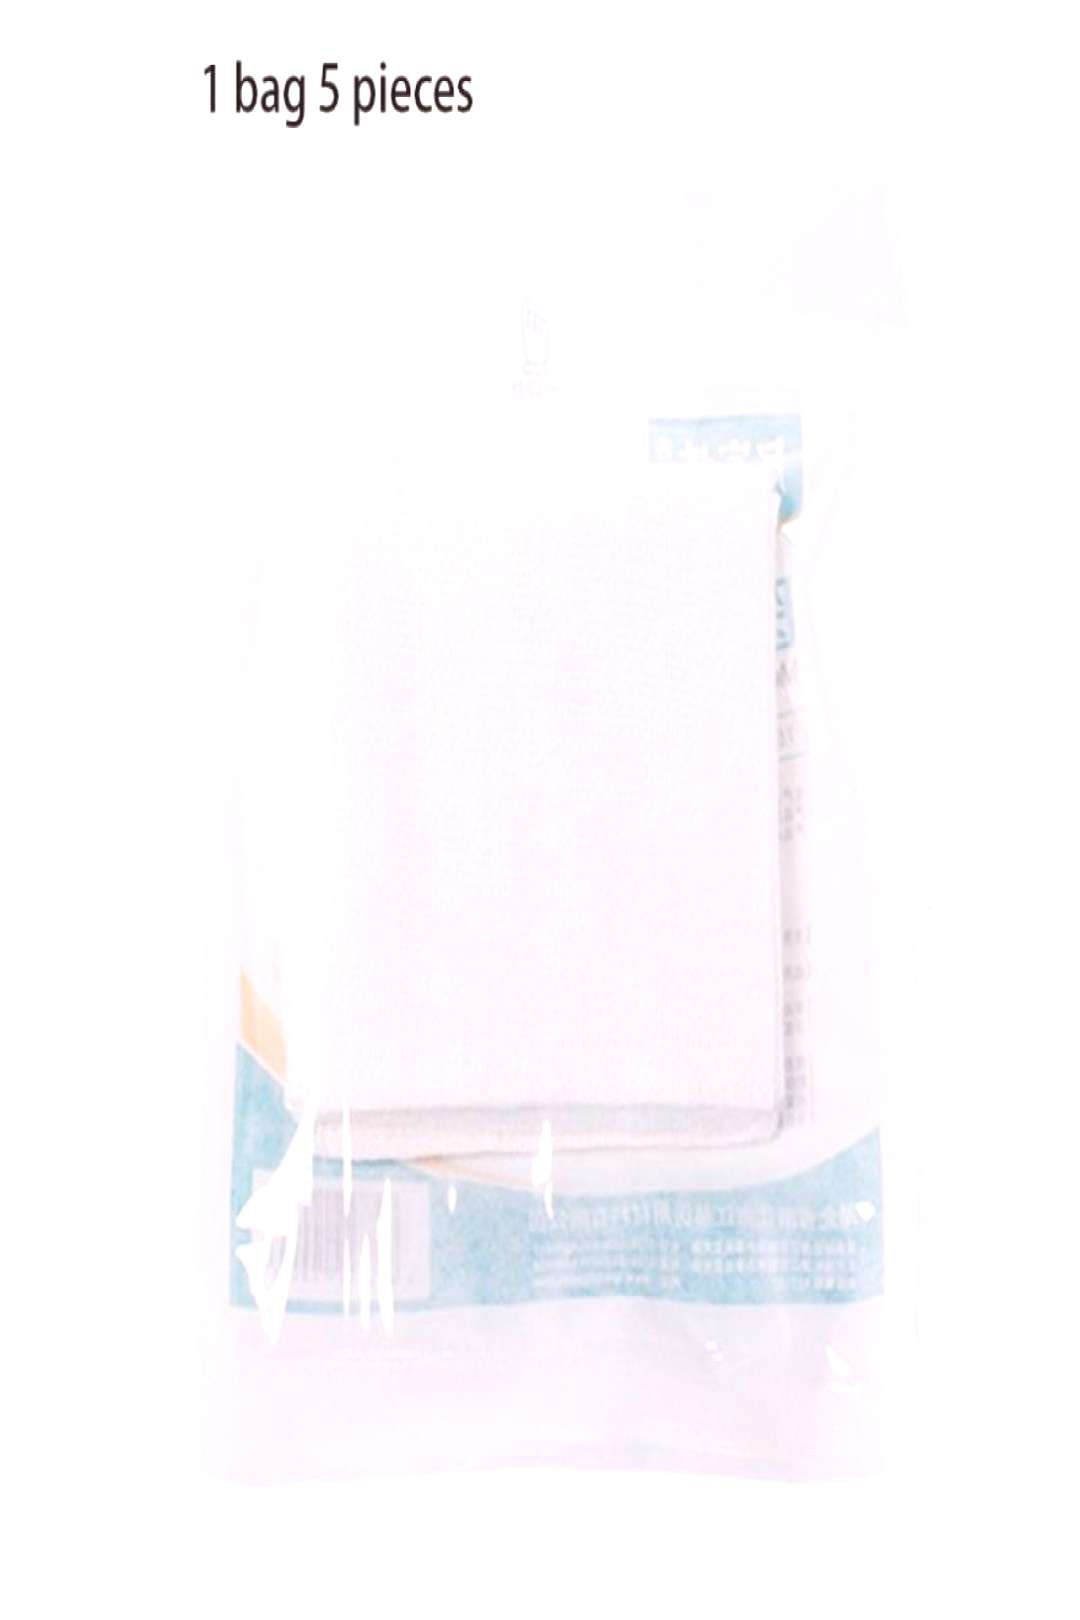 5Pcs/Pack Soft Cotton 8 Layered Sterile Medical Gauze Pad Disinfectant Swab for Wound Dressing Prep